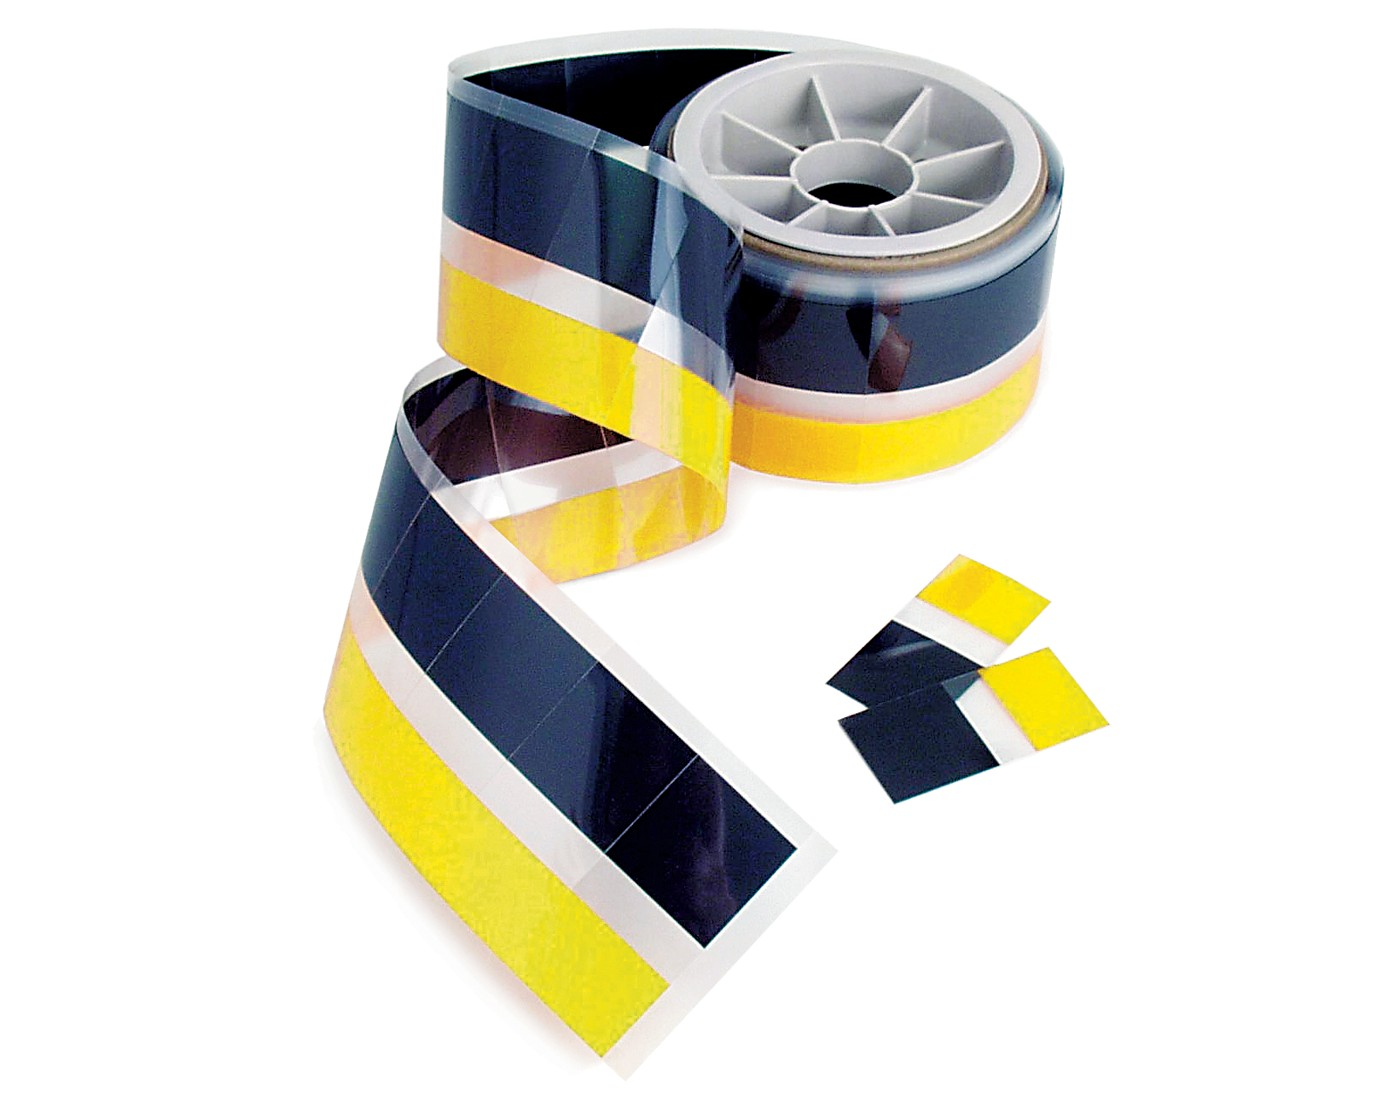 Photo of yellow and black bergquist hi-flow phase change thermal interface material on a spool and cut pieces